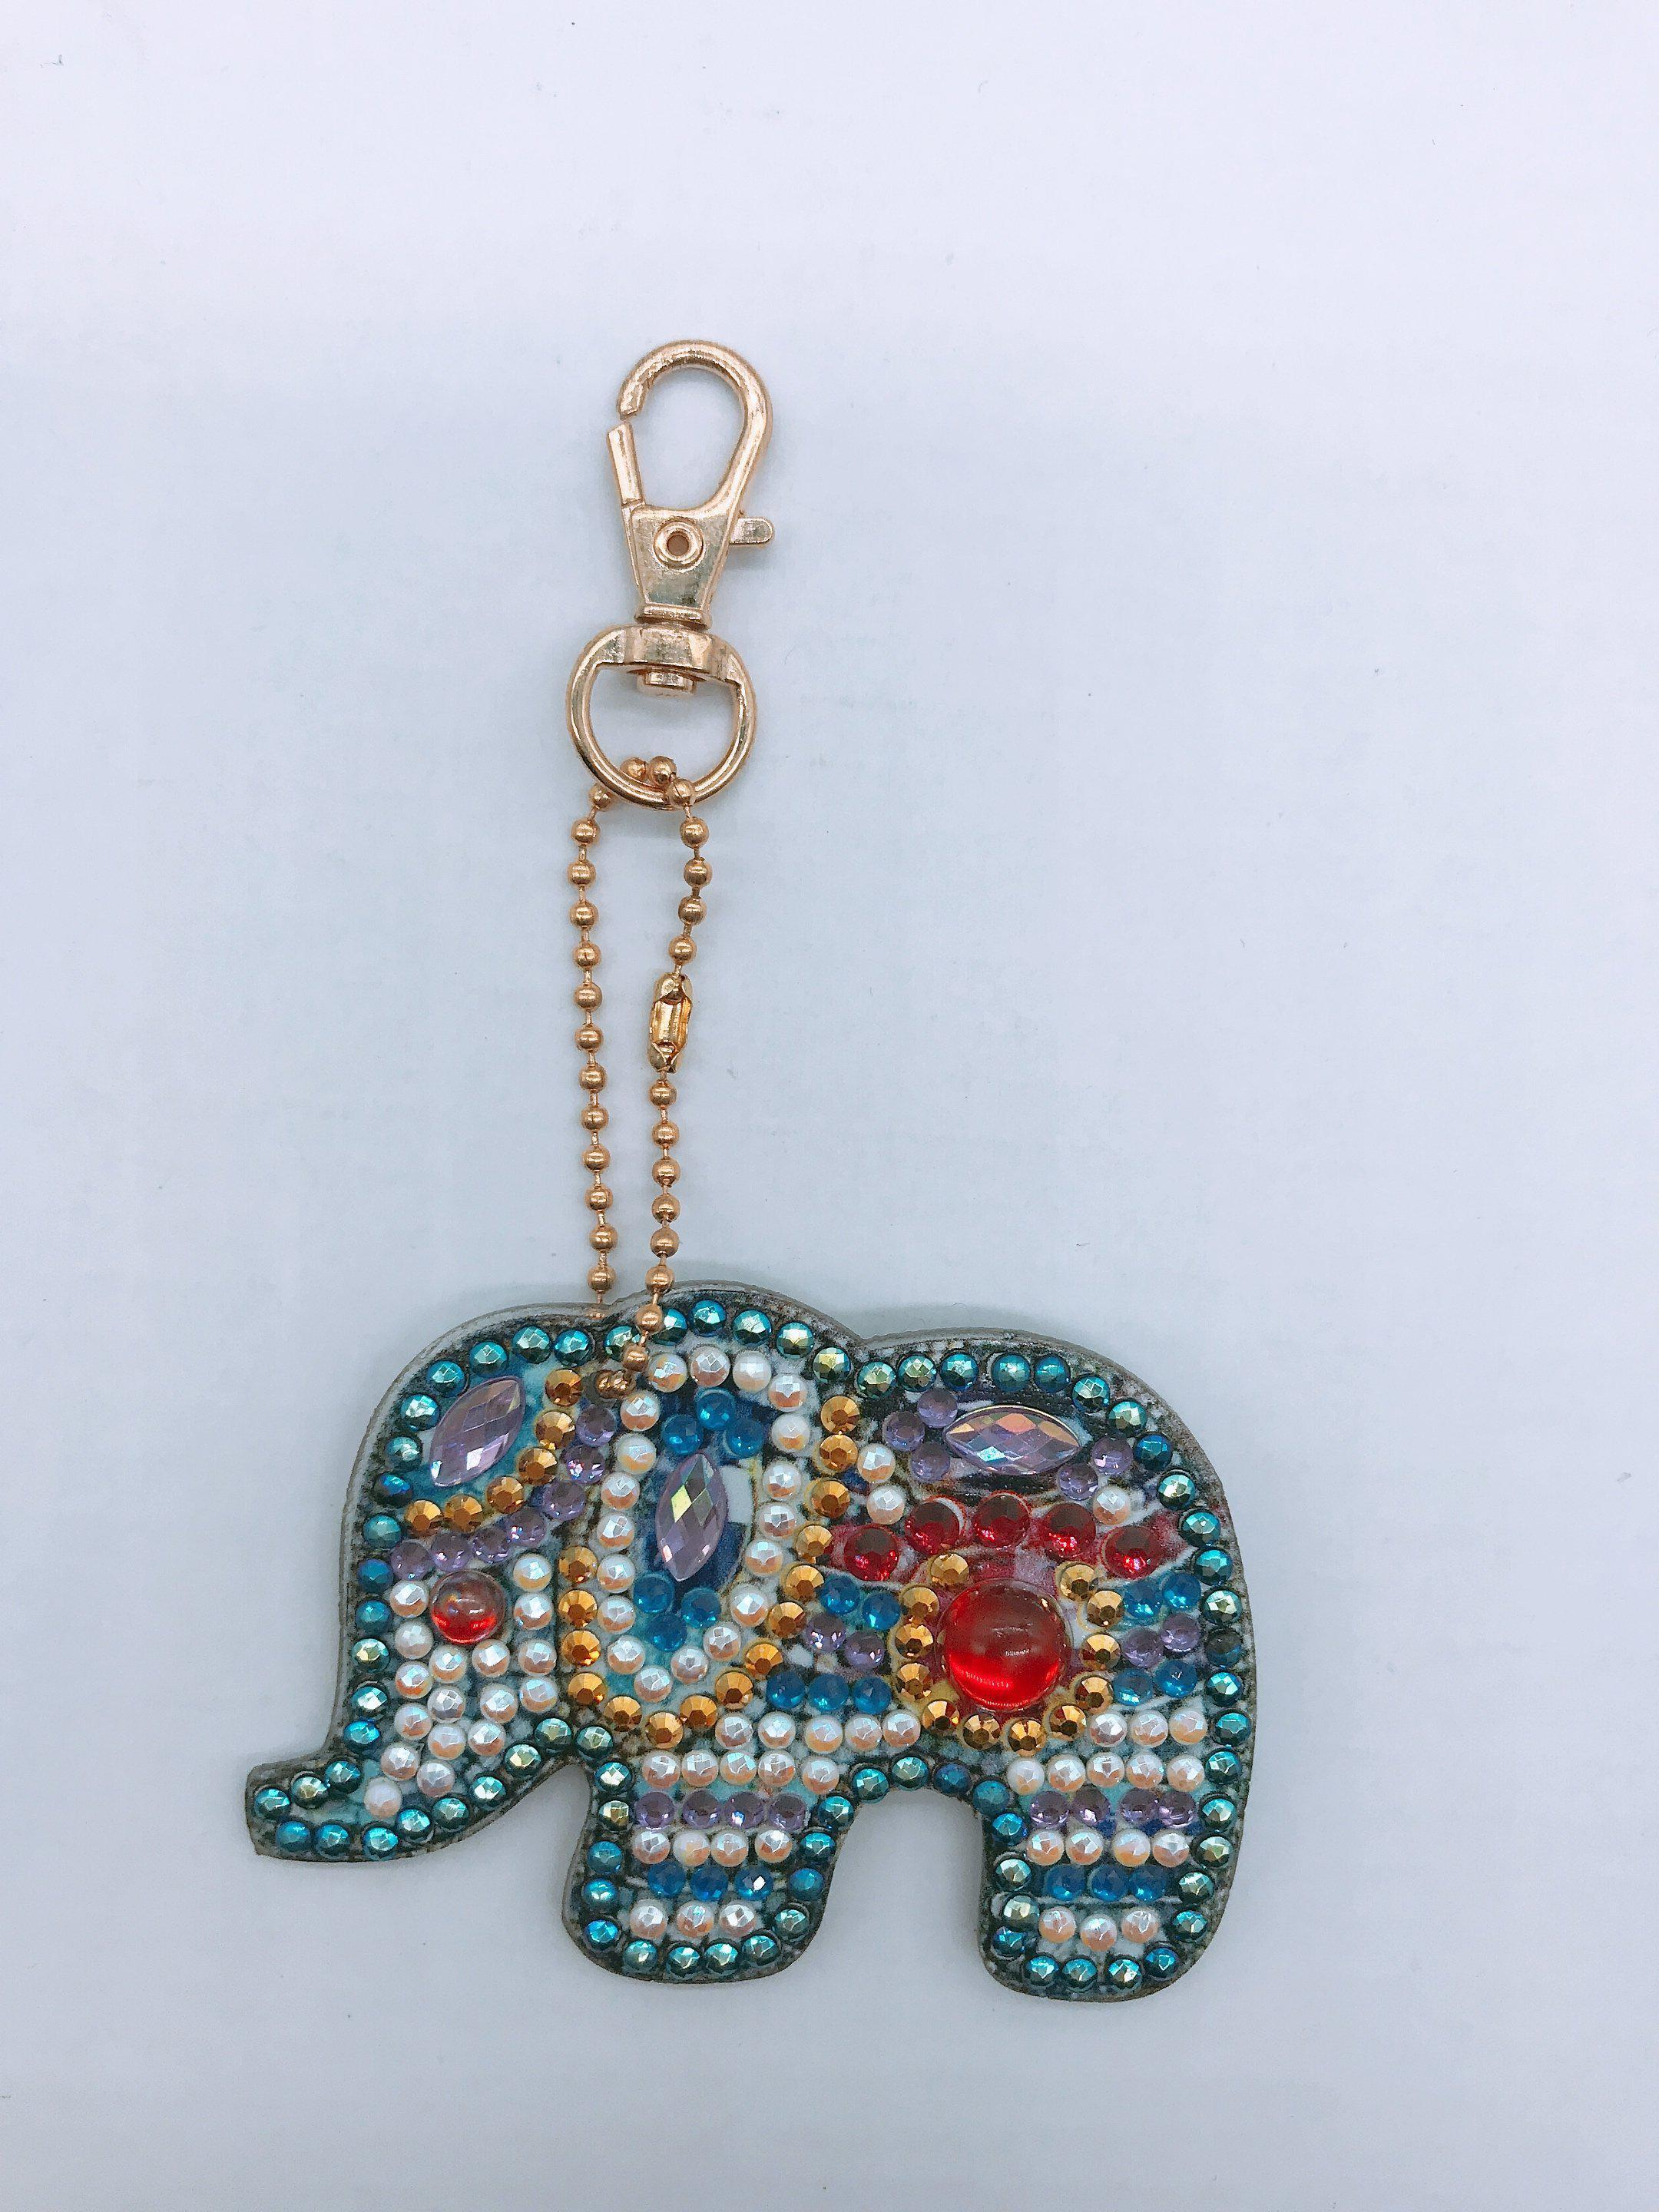 Majestic Elephants 1 - Diamond Key Chains-Key chain-Heartful Diamonds